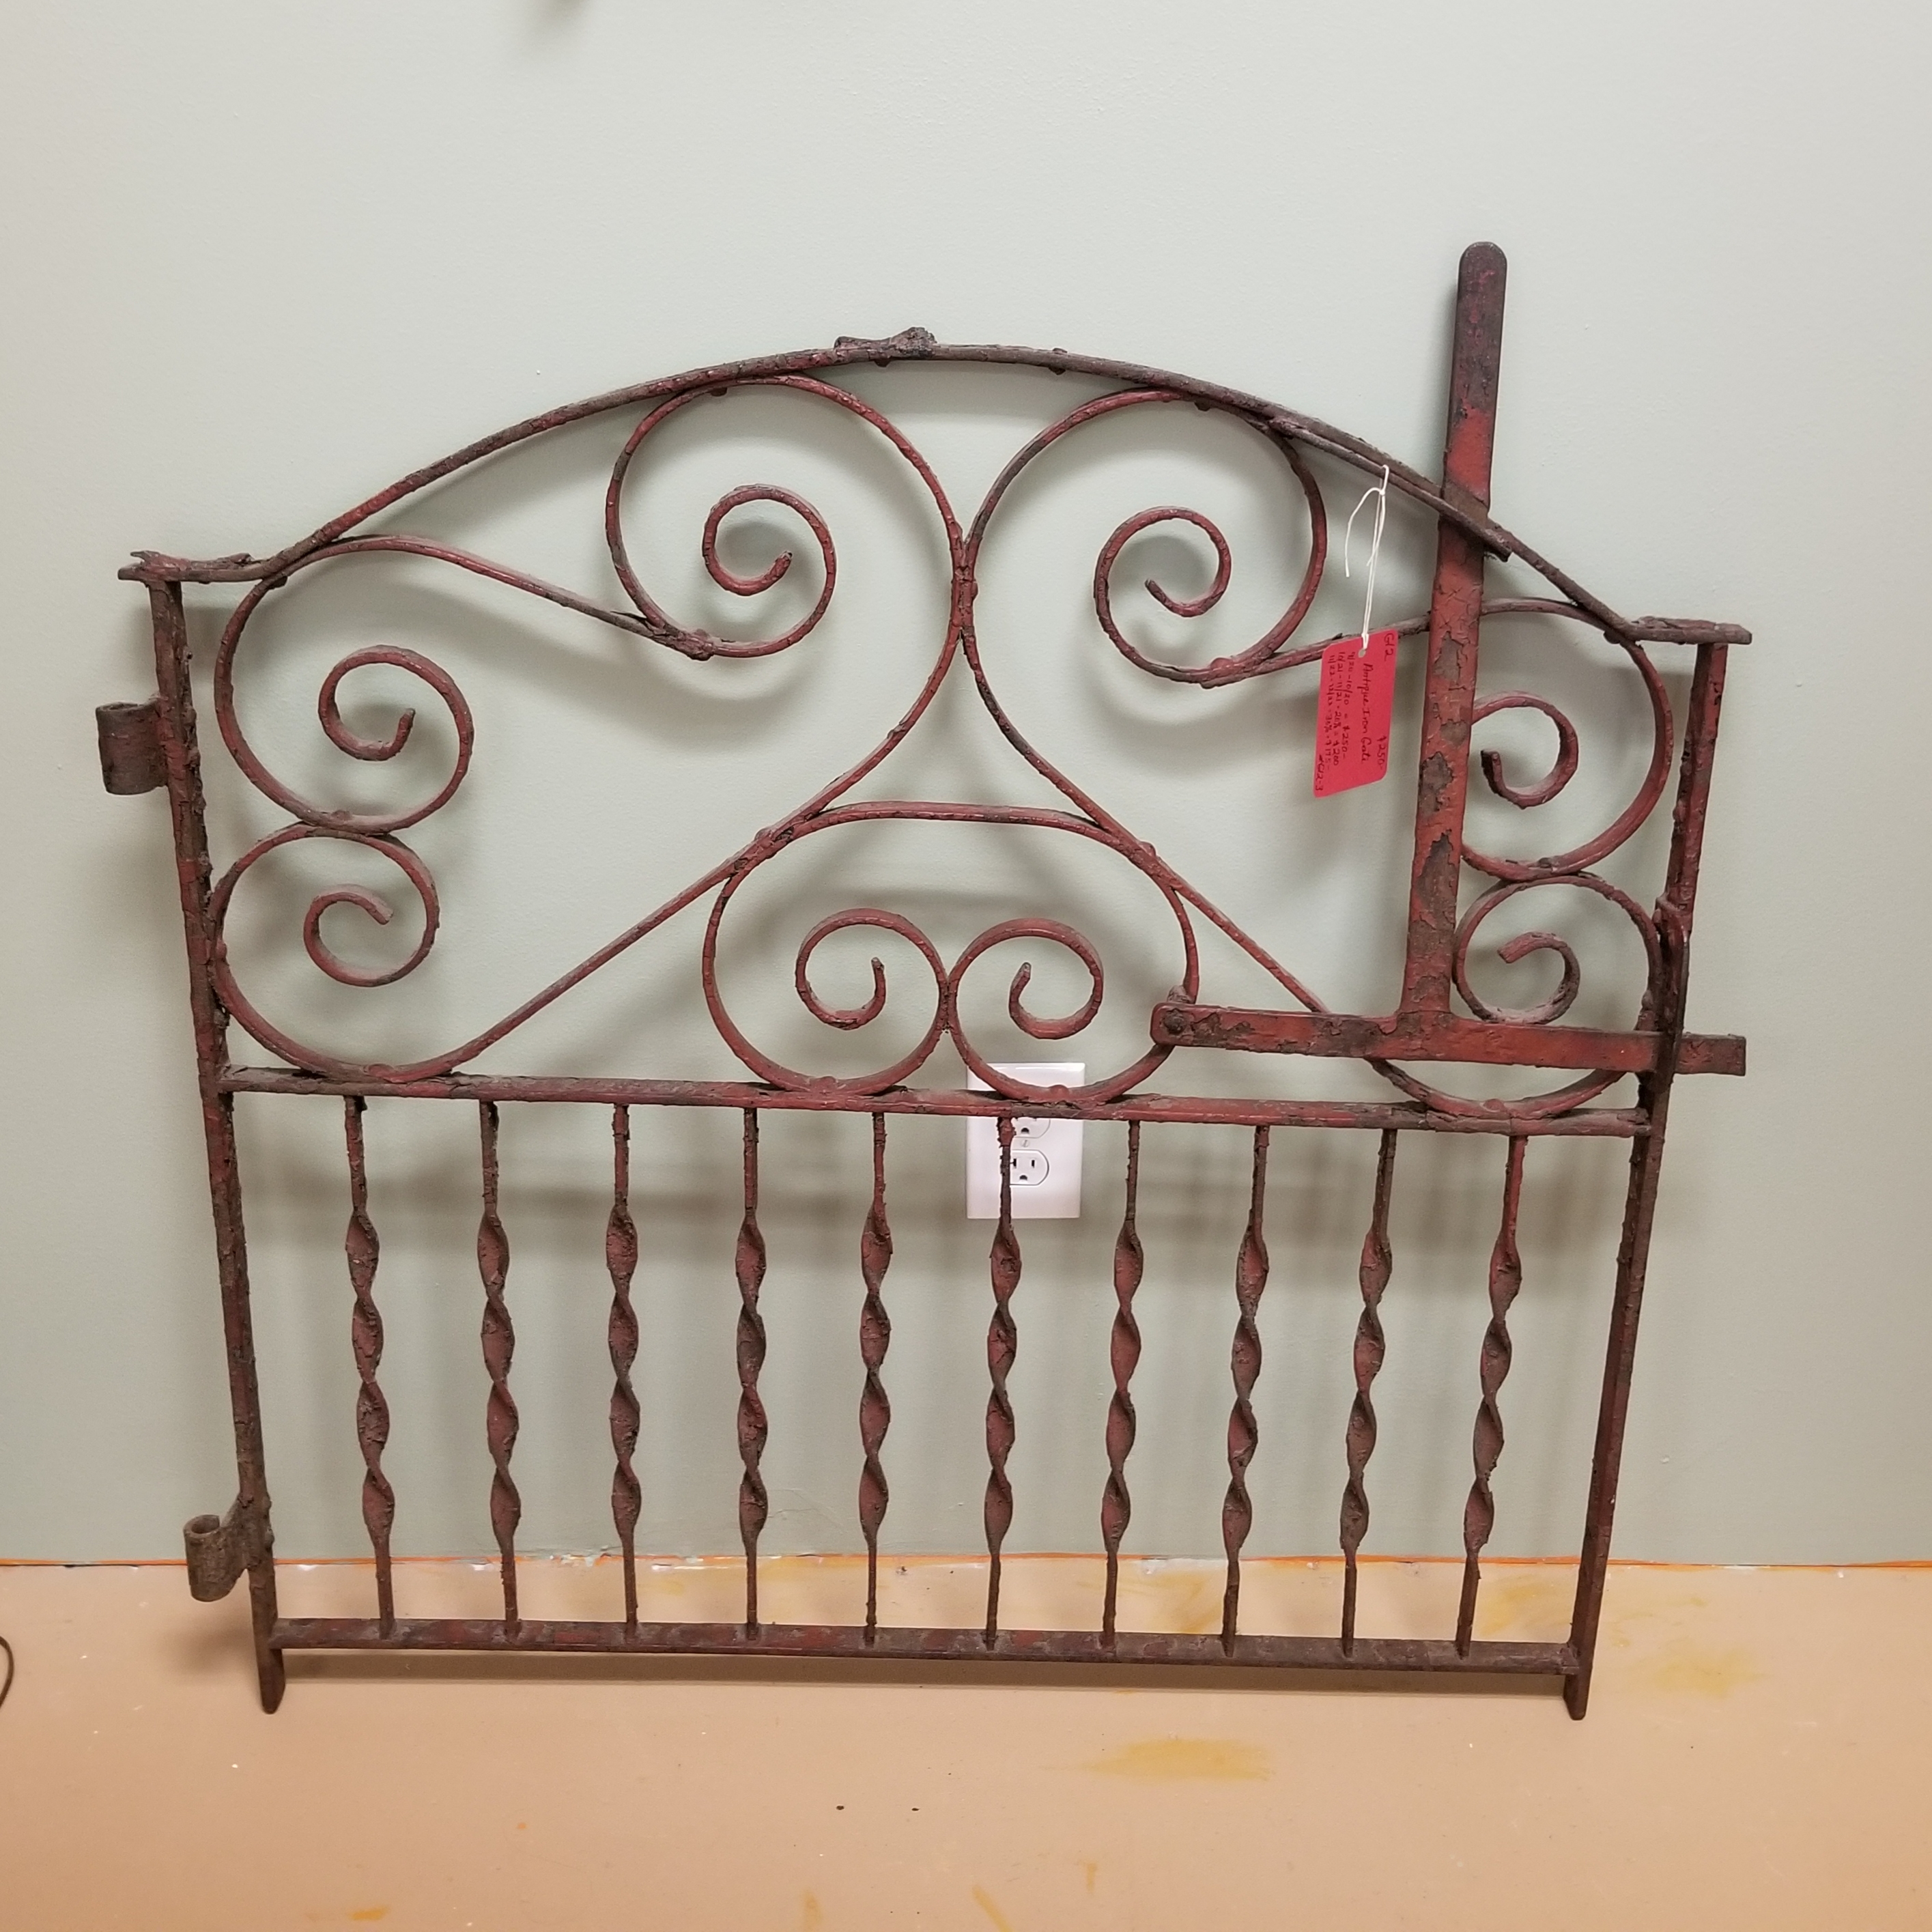 Antique Garden Gate $250